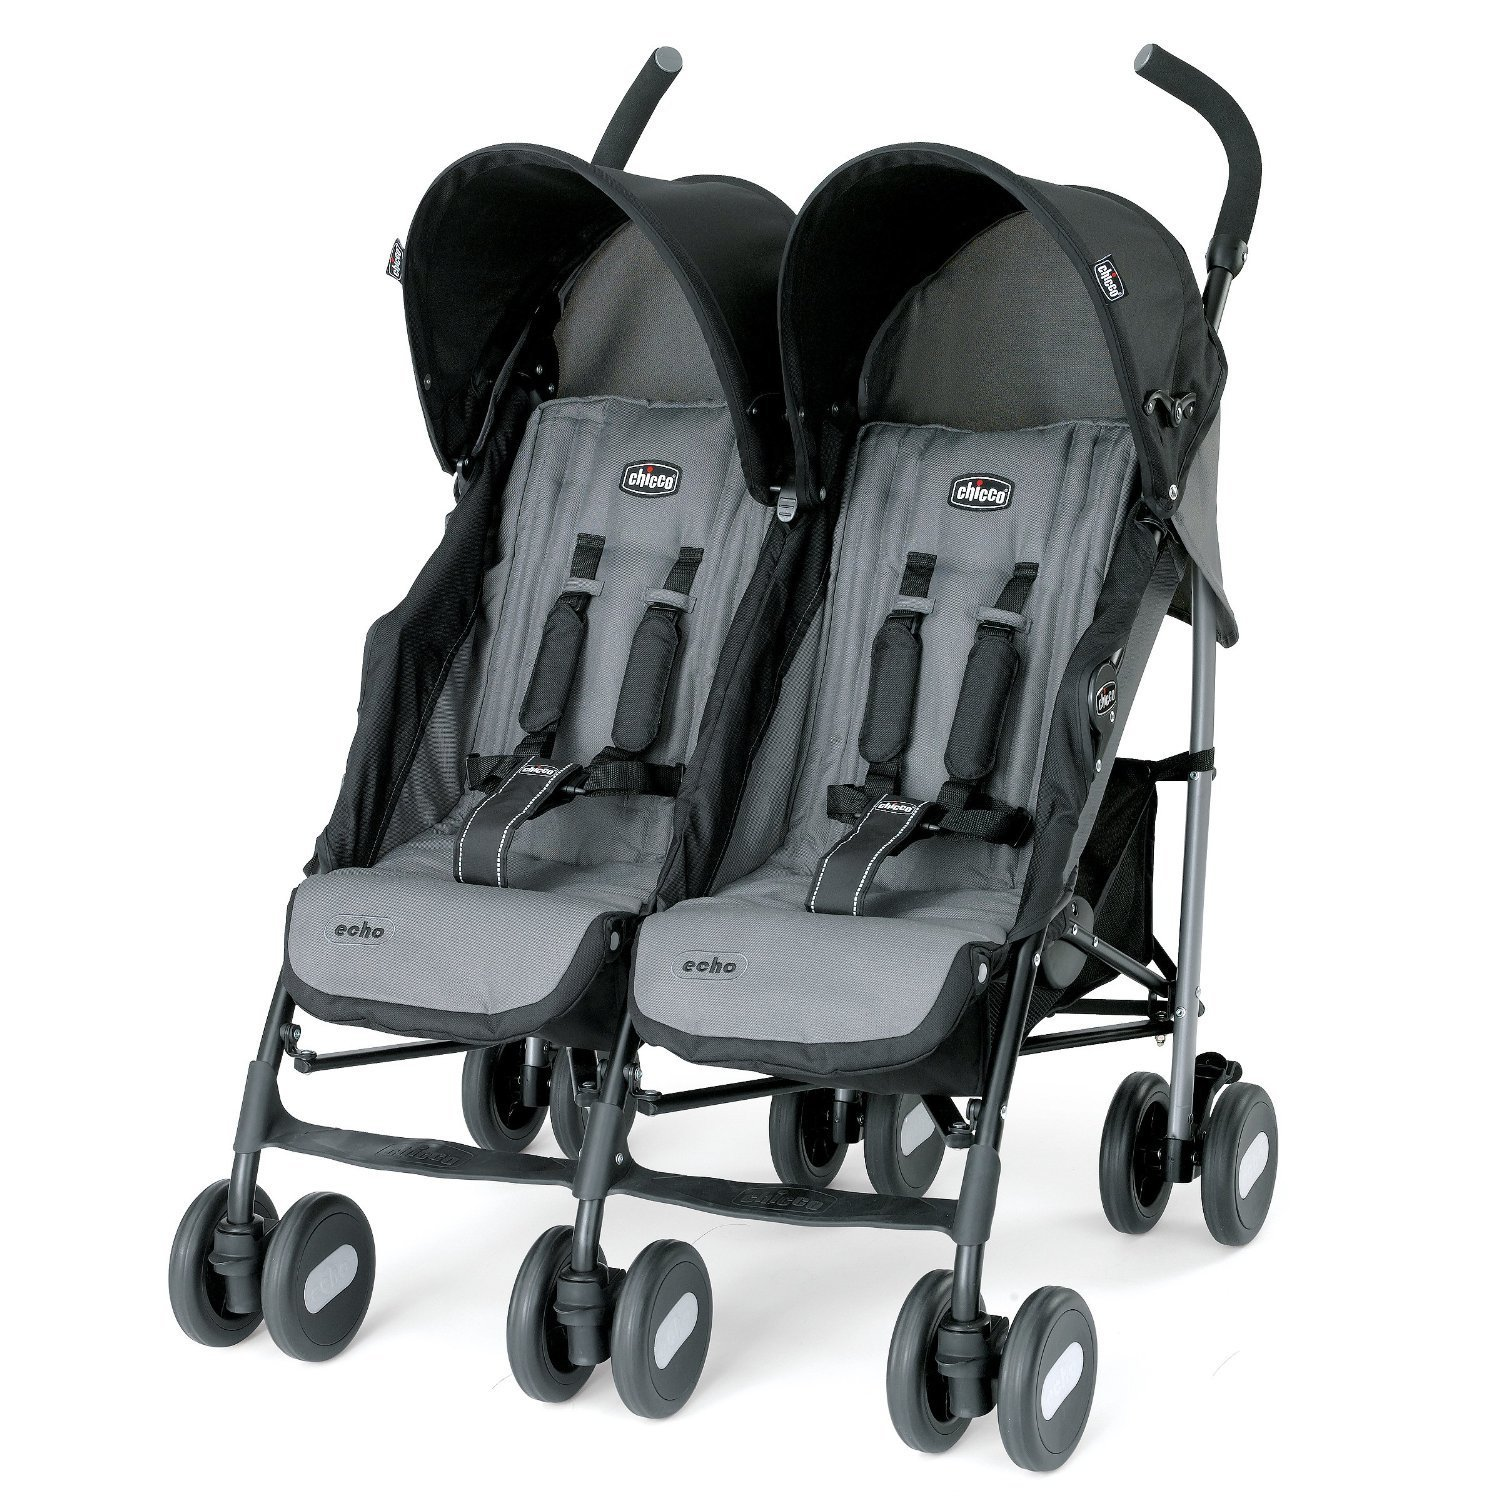 Combi Double Stroller Side By Side Picking The Best Double Stroller For Your Needs Beezy Beez